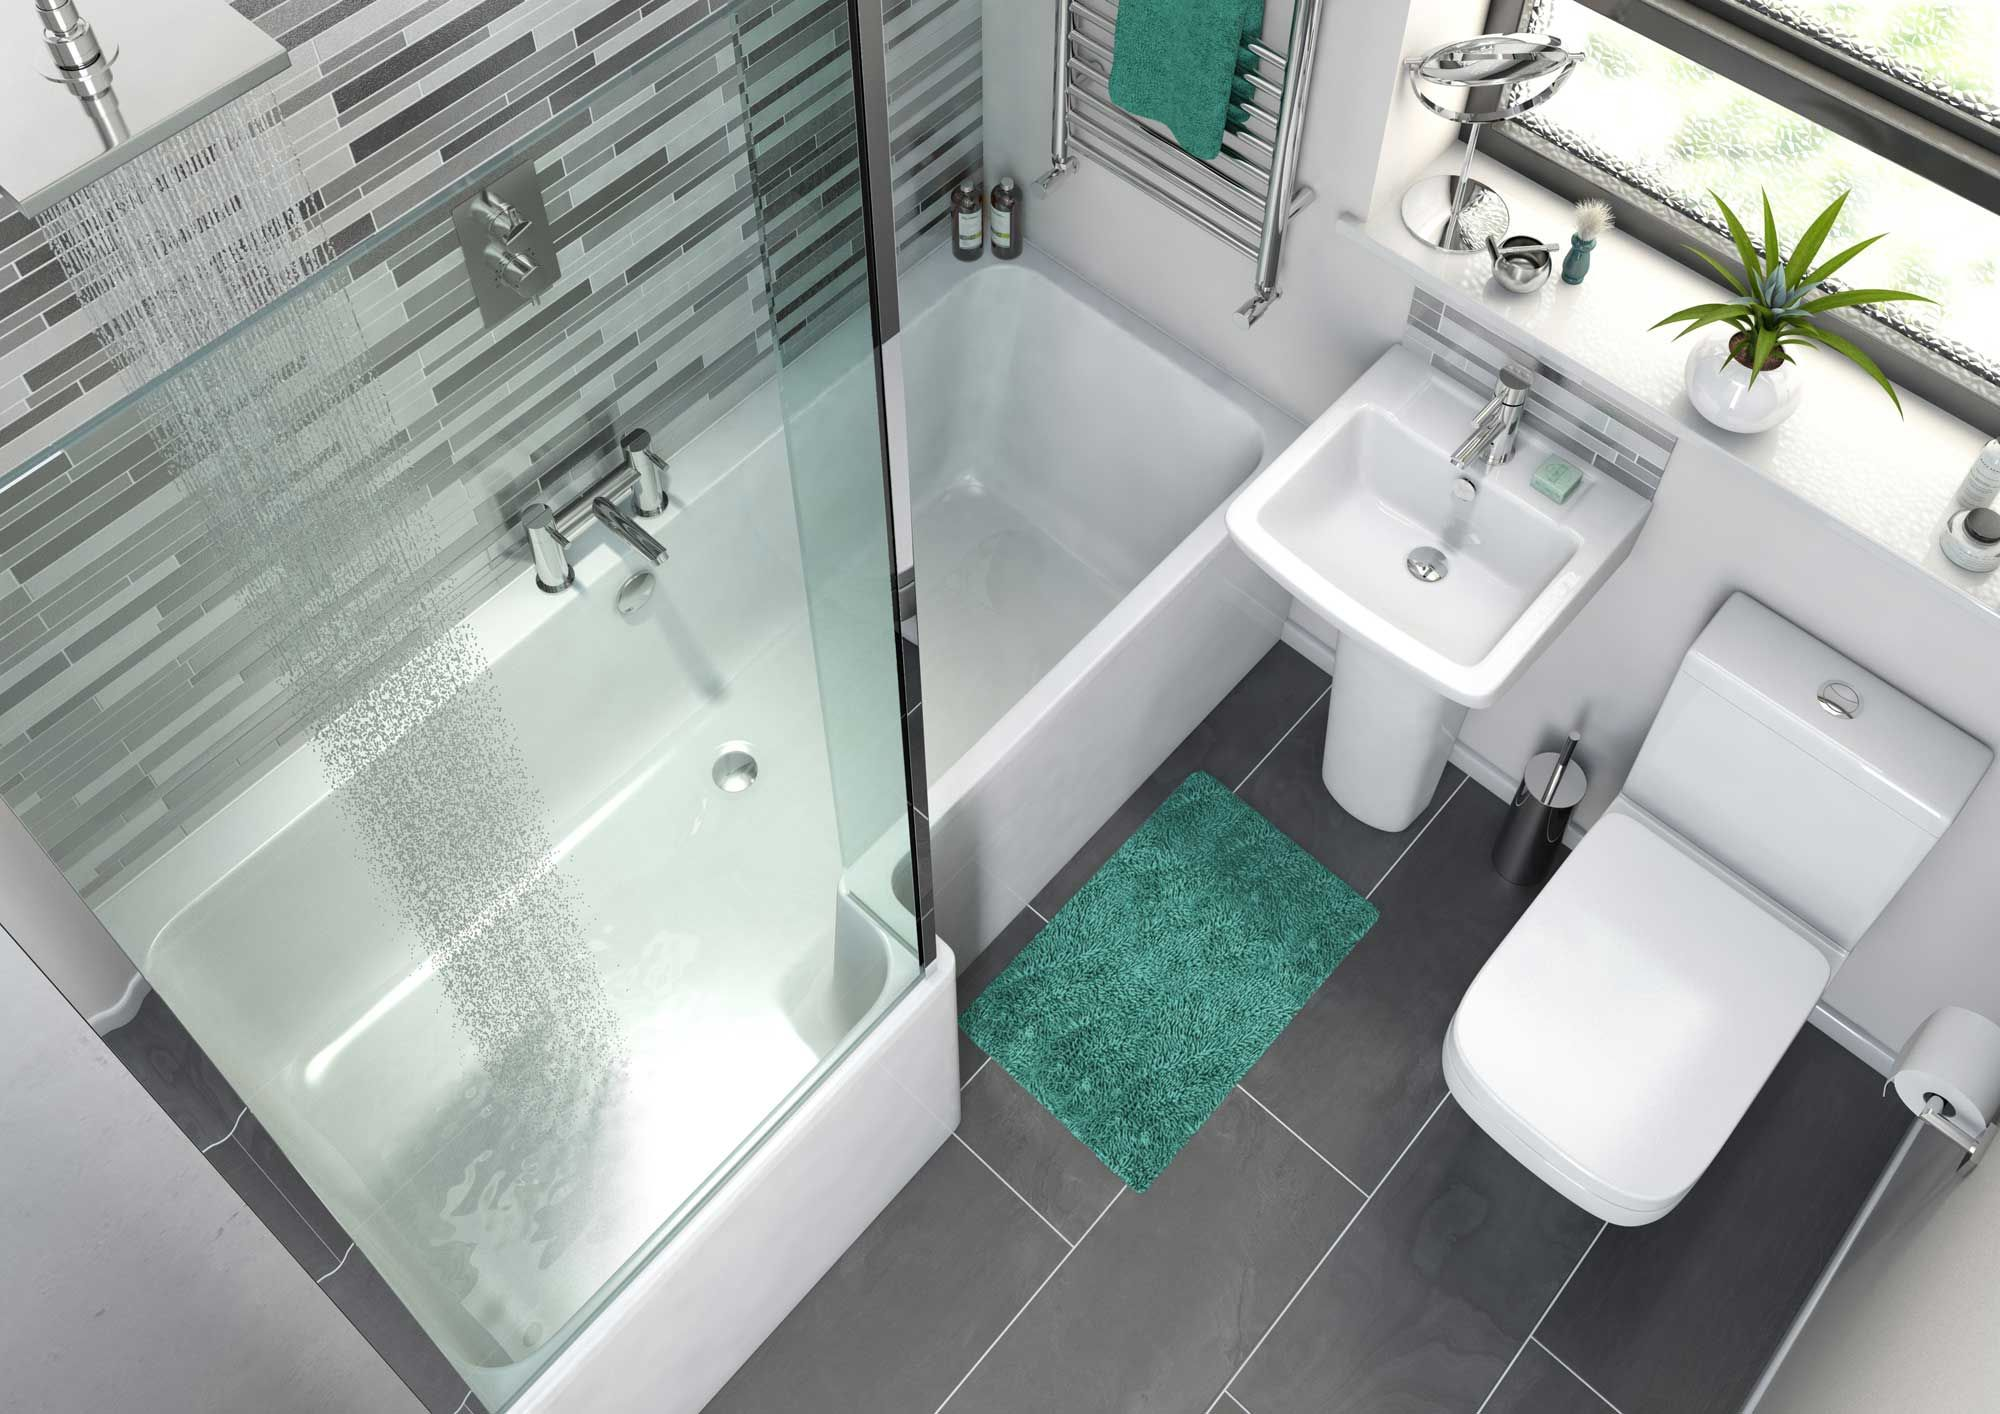 Small bathroom suite perfect for UK bathrooms and ... on Small Bathroom Ideas Uk id=14996